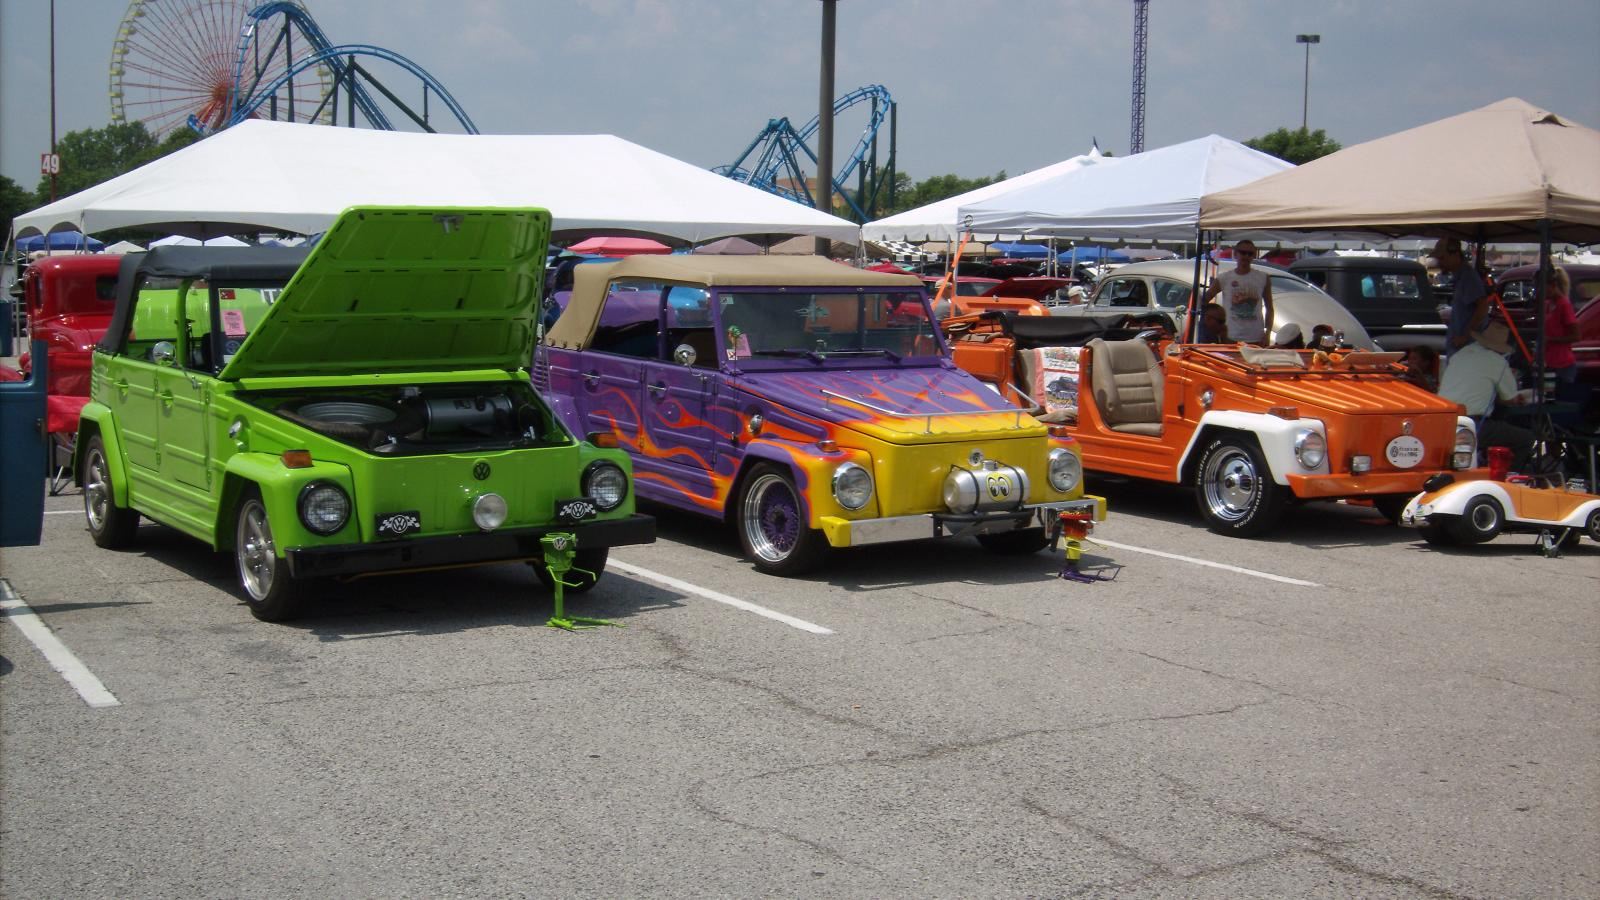 TheSambacom ThingType View Topic A Car Show In - Car show louisville ky